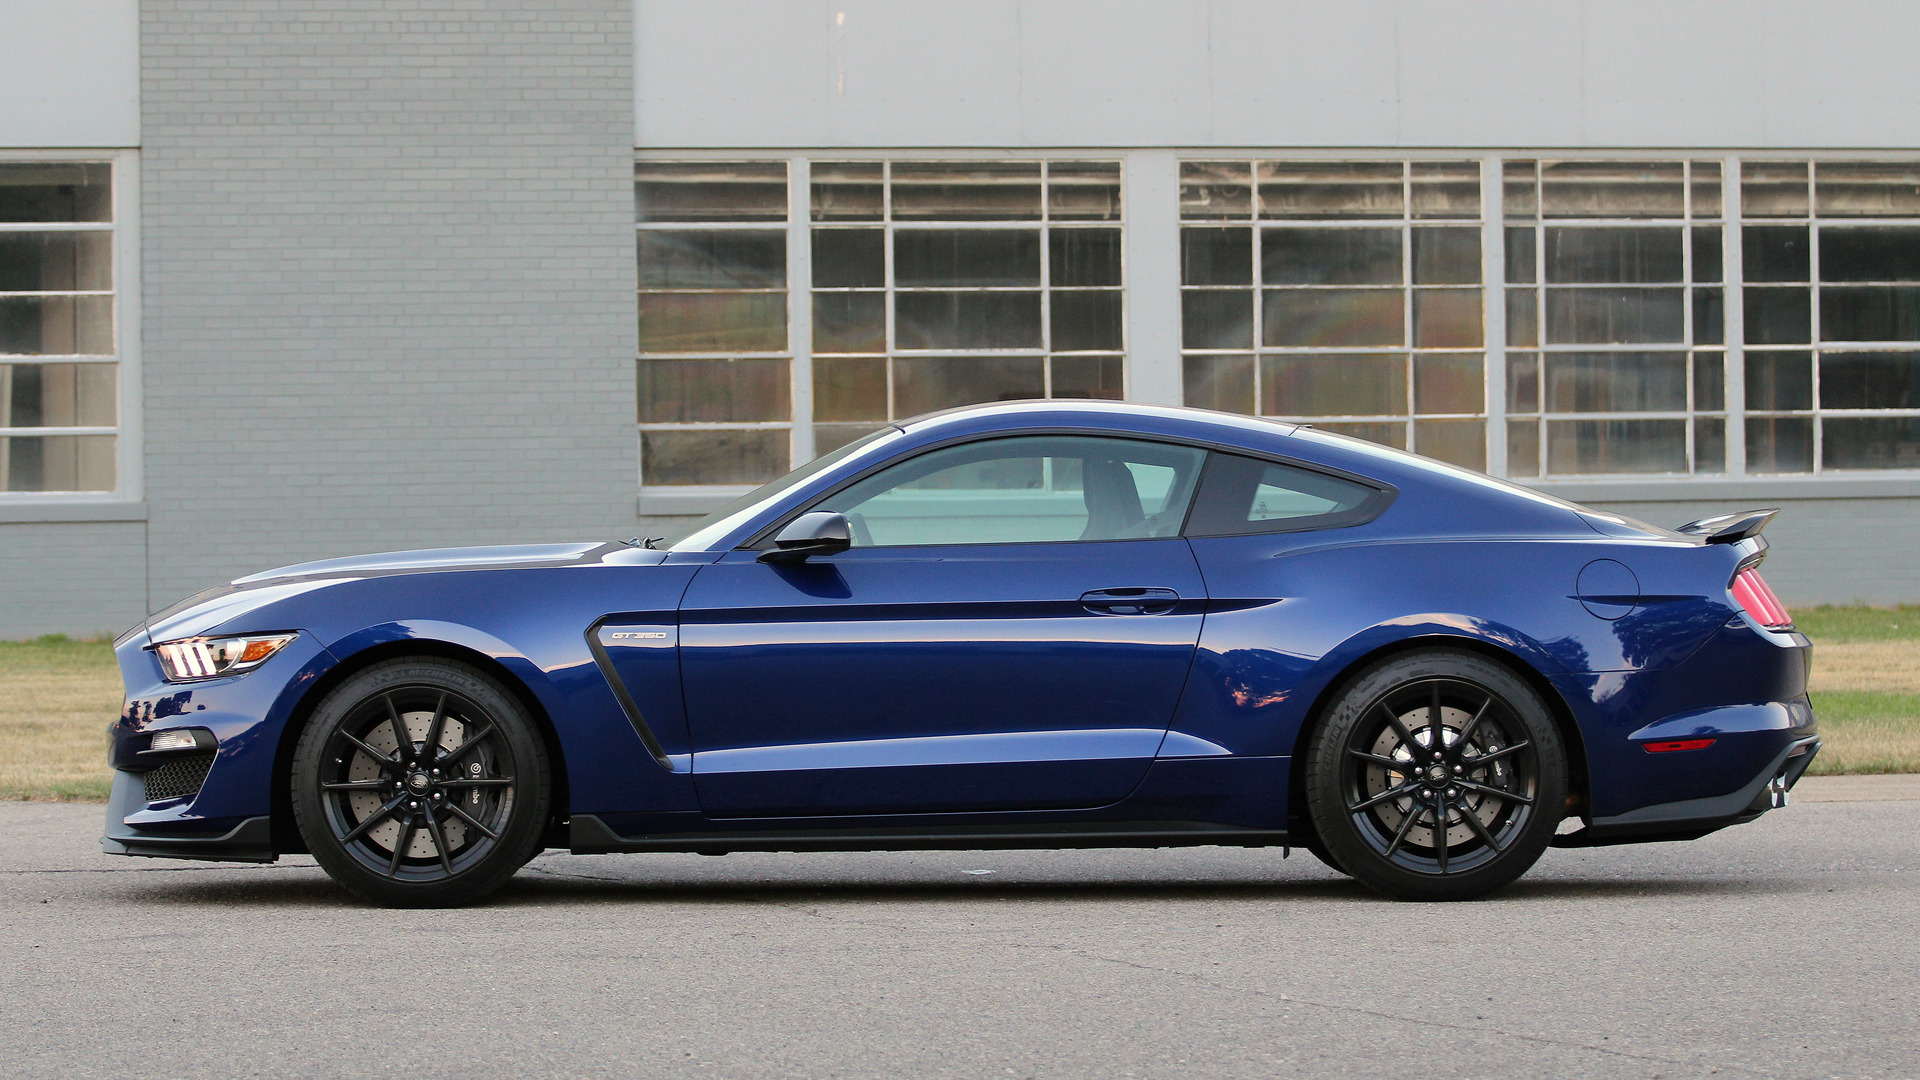 Ford Mustang Shelby GT350 photo 166262